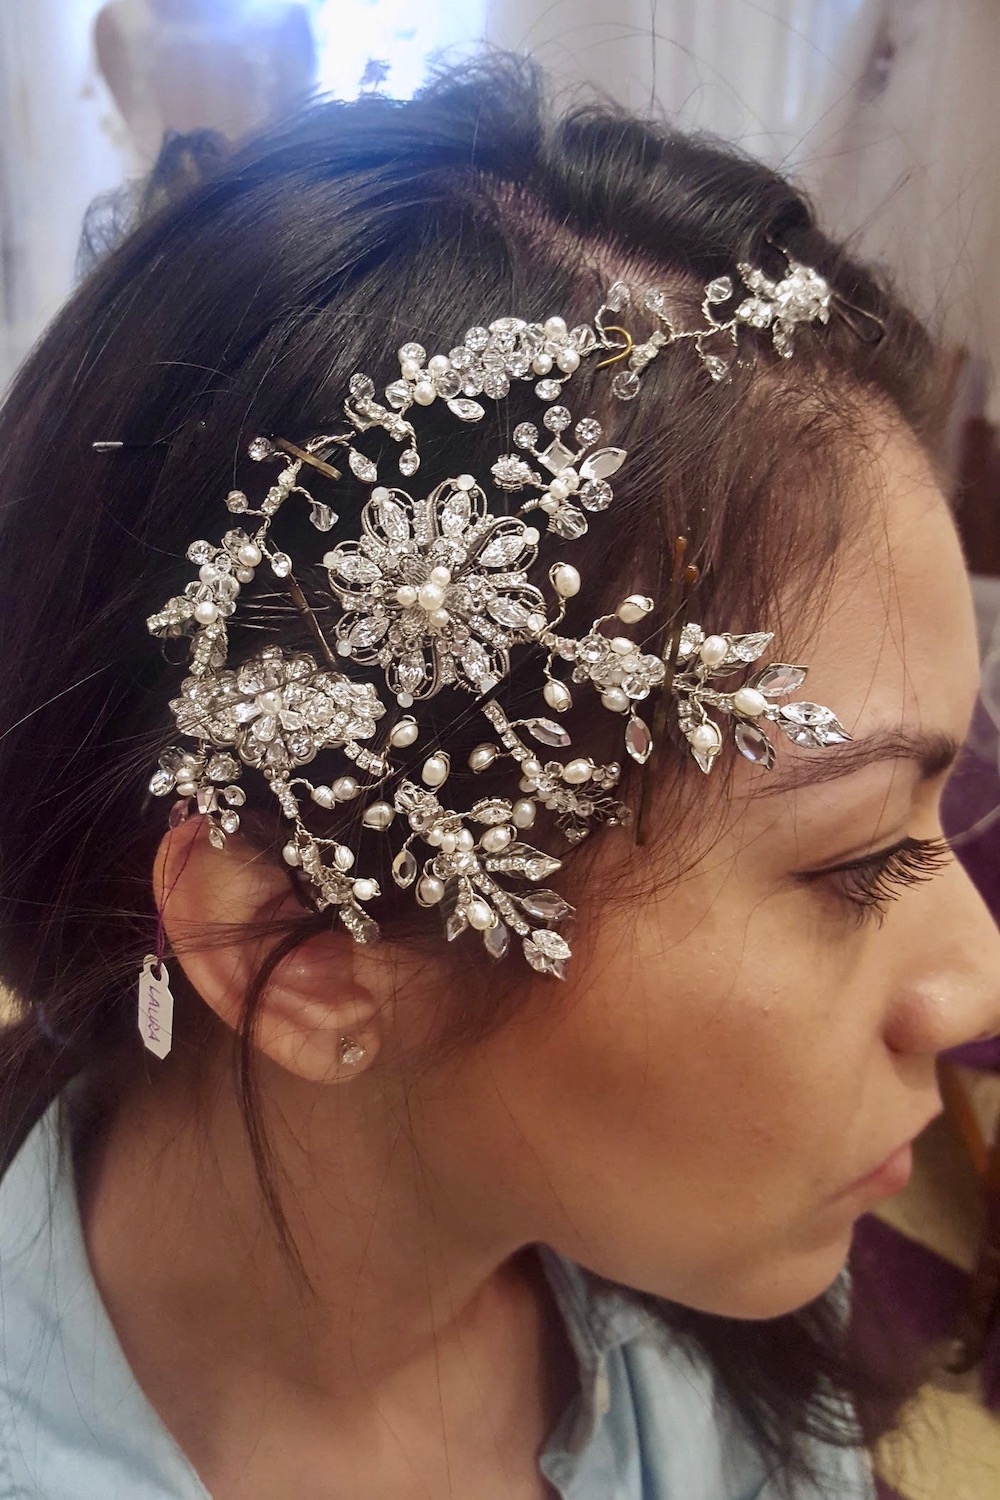 This is an amazing side headpiece in the midst of being created by using several different designs.